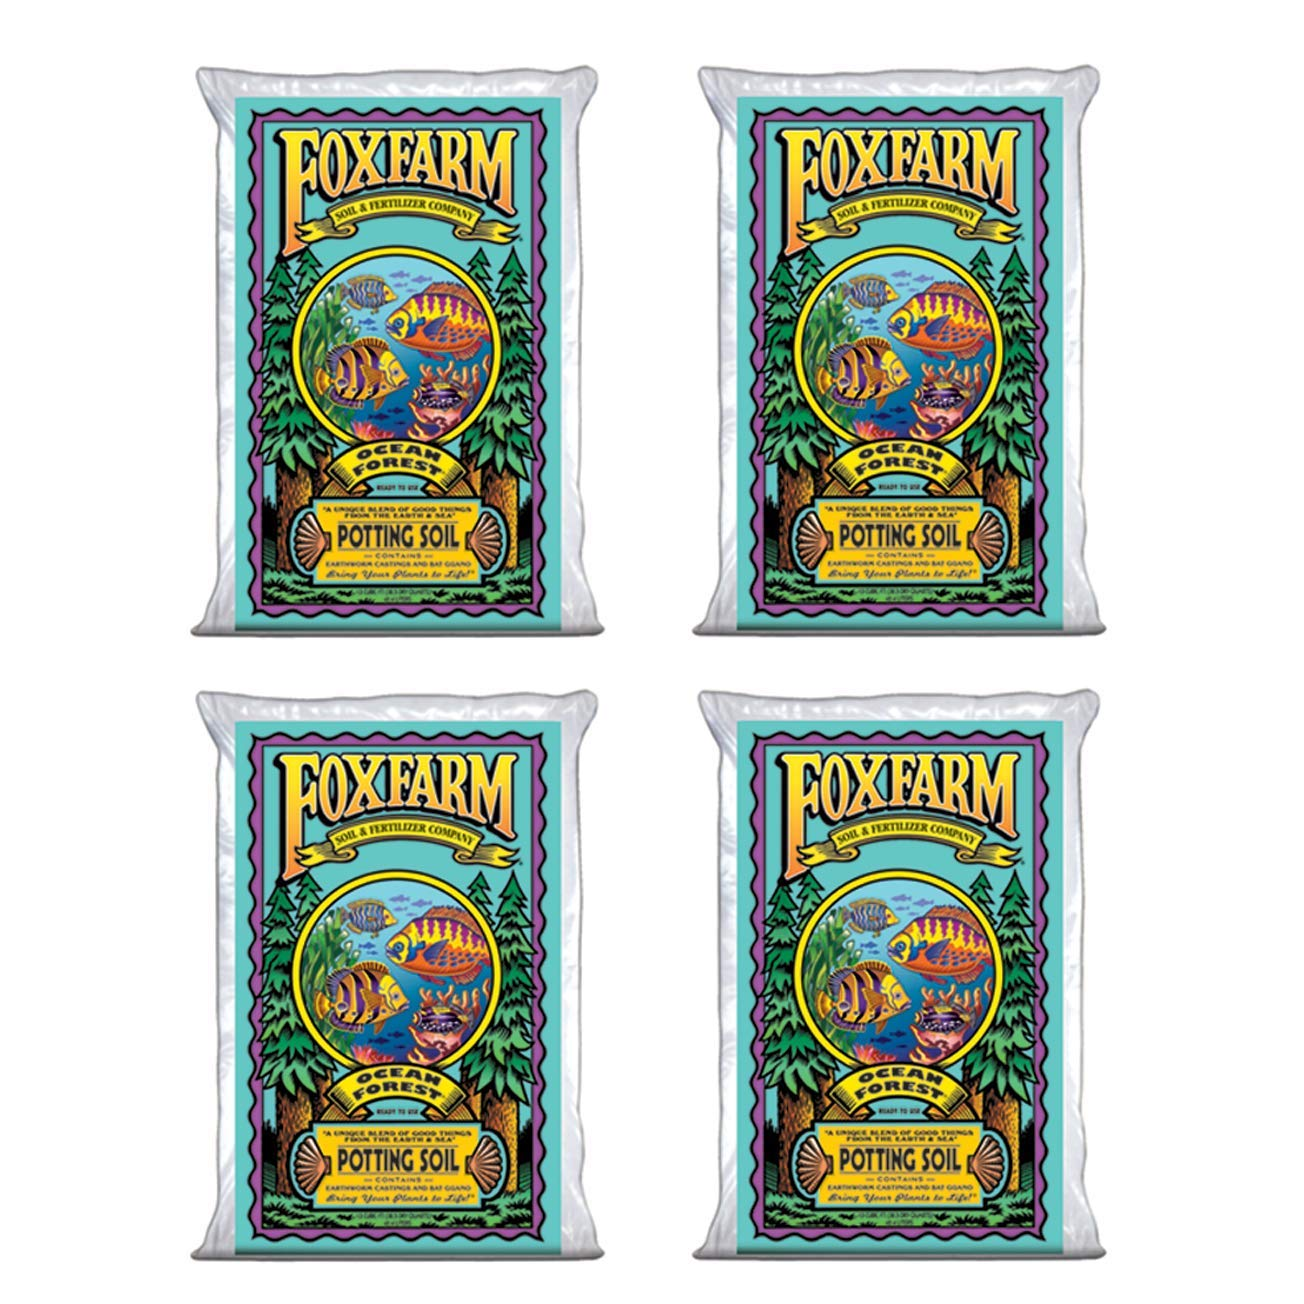 (4) FoxFarm FX14000 Ocean Forest Garden Potting Soil Bags 6.3-6.8 pH | 6 Cu Ft by Fox Farm